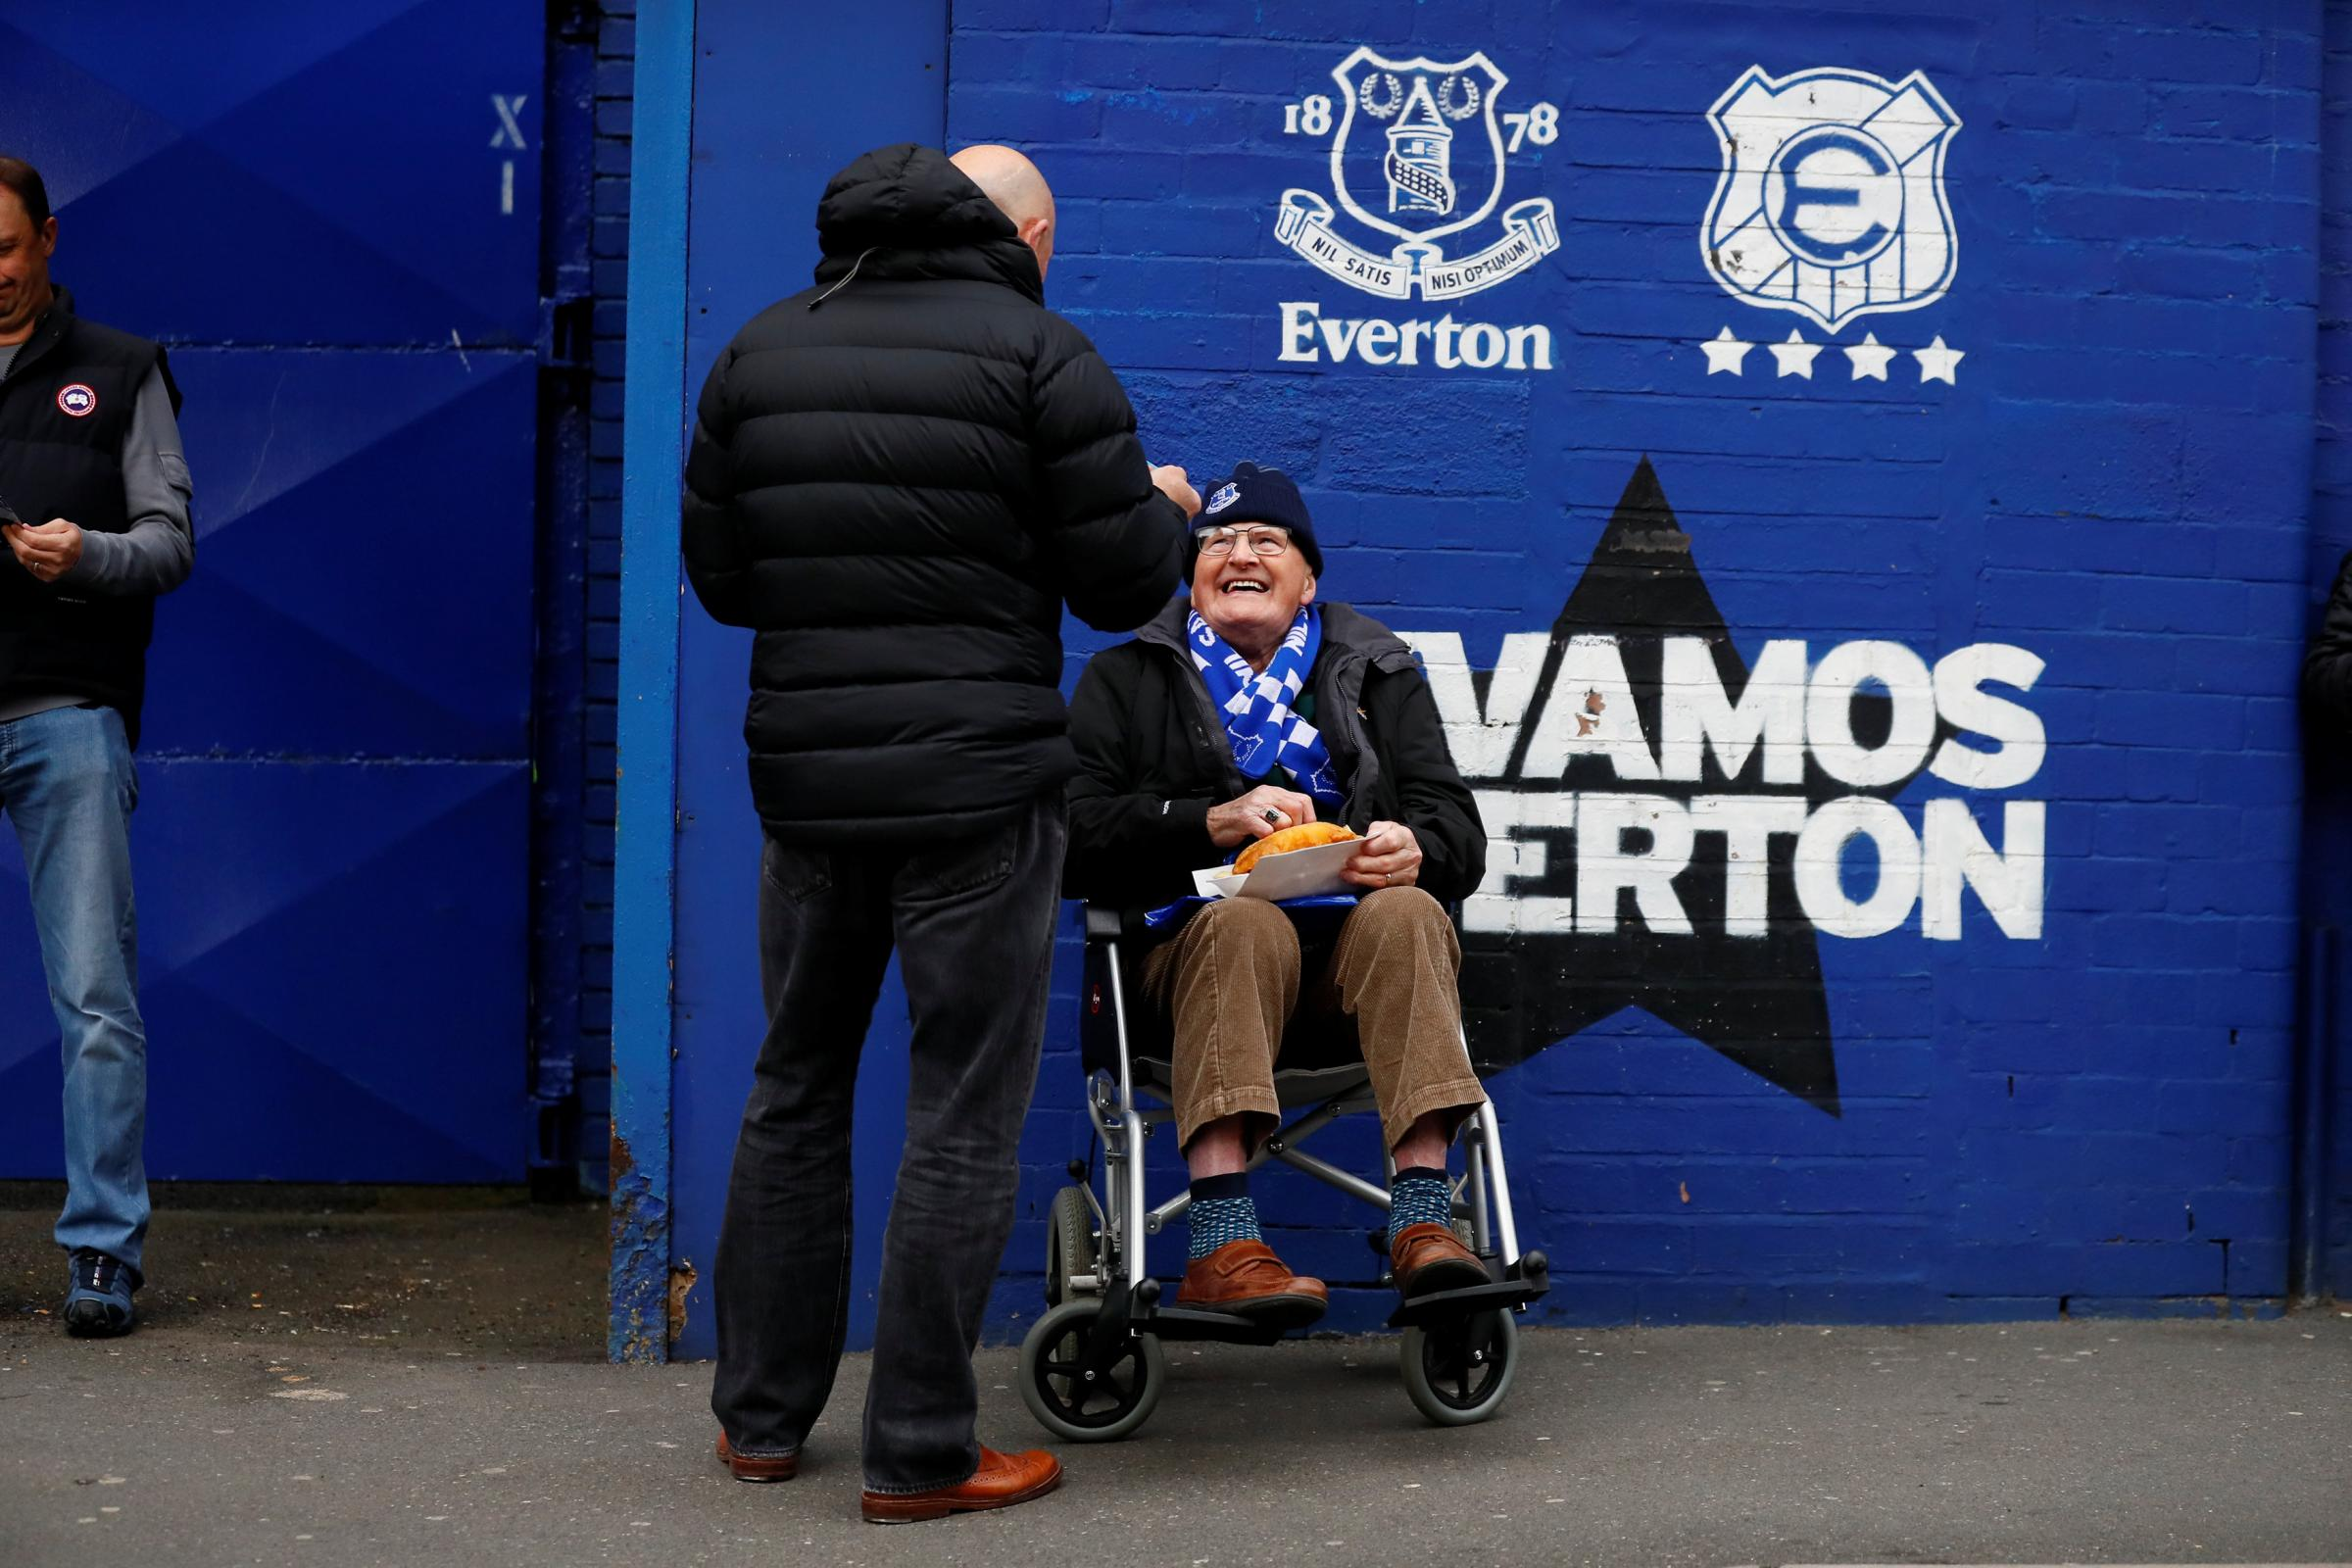 Watford at Marco Silva's Everton in first away game of the Premier League